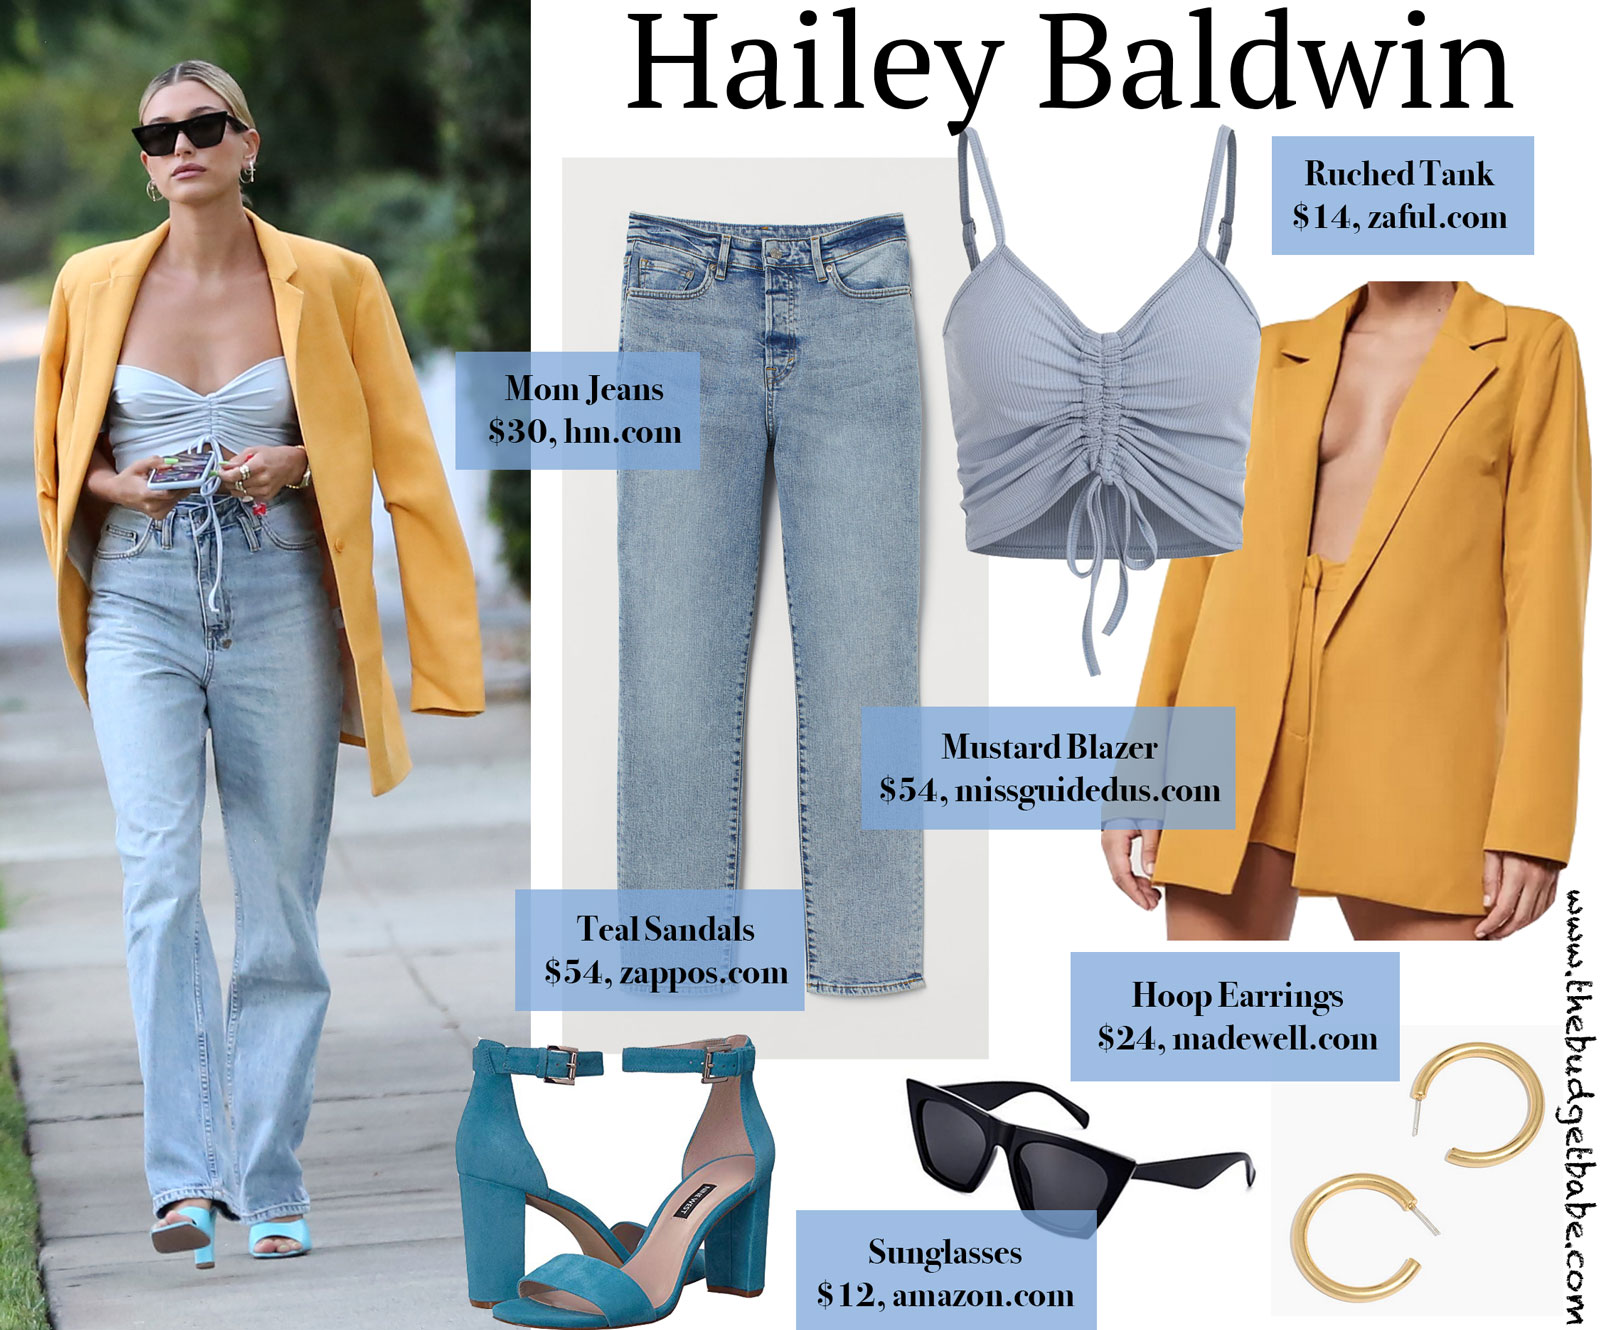 Hailey Baldwin Mustard Blazer Look for Less